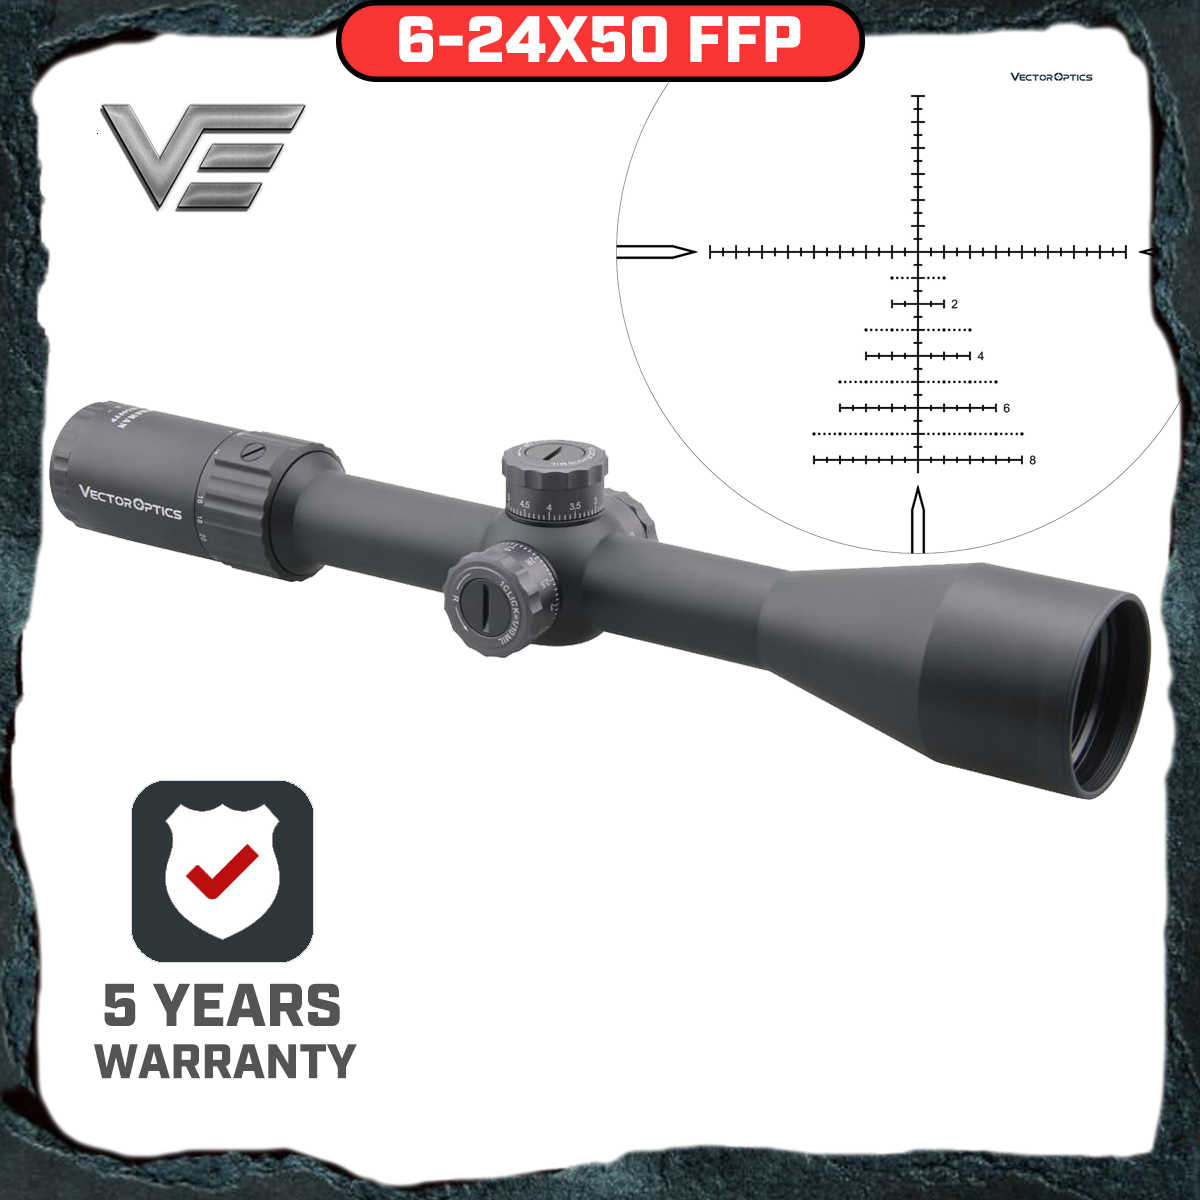 Vector Optics Marksman 6-24x50 Ffp Tactical Riflescope Hunting Rifle Scope Side Focus Min 10Yds 1/10MIL Aanpassing. 30 06 Win